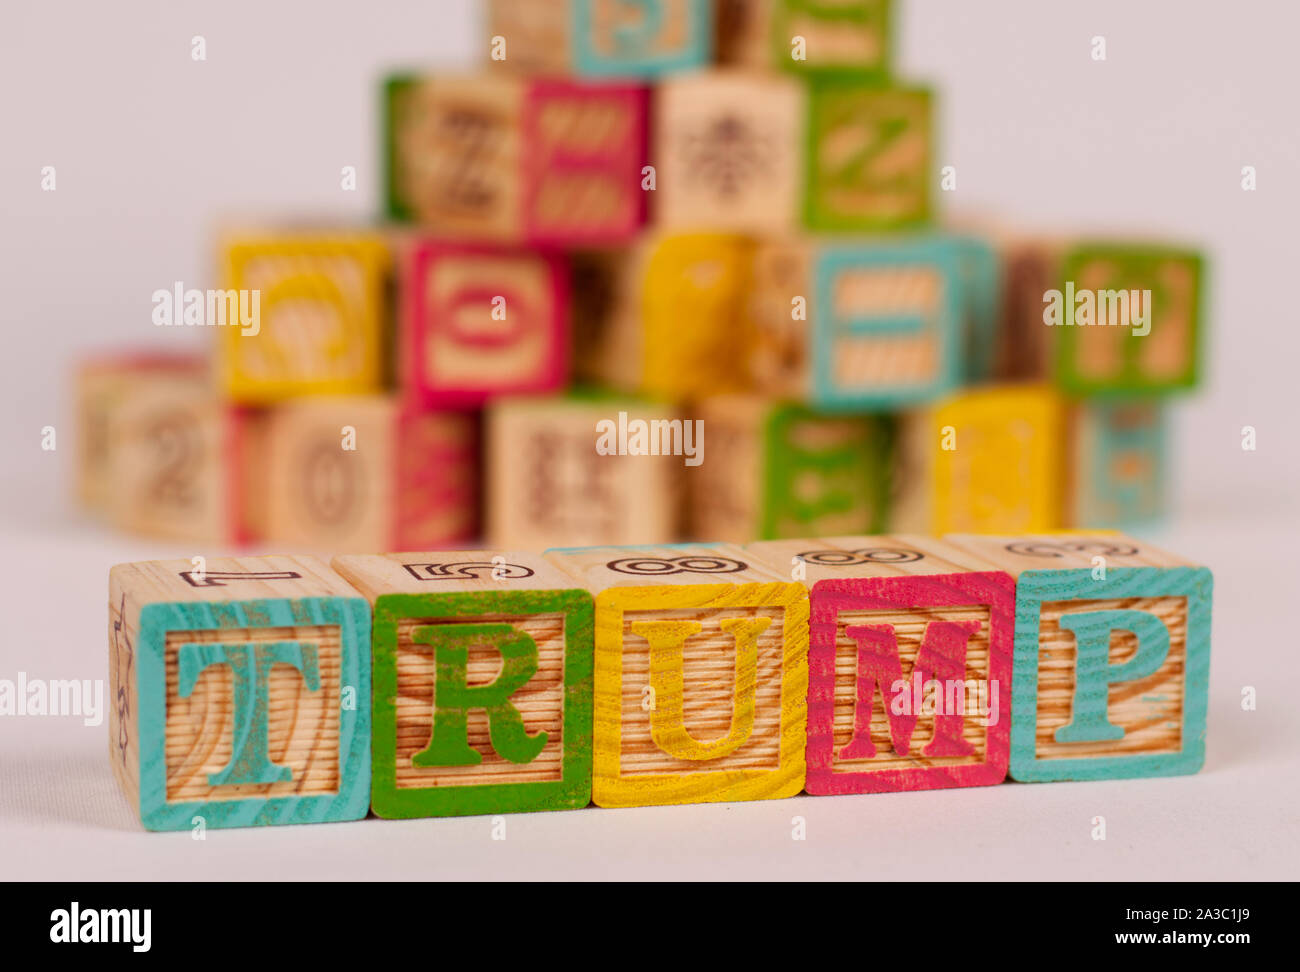 The name 'Trump' in wooden, coloured blocks. Donald Trump is the republican President of USA, known for fake news and impeachment by the democrats. Stock Photo